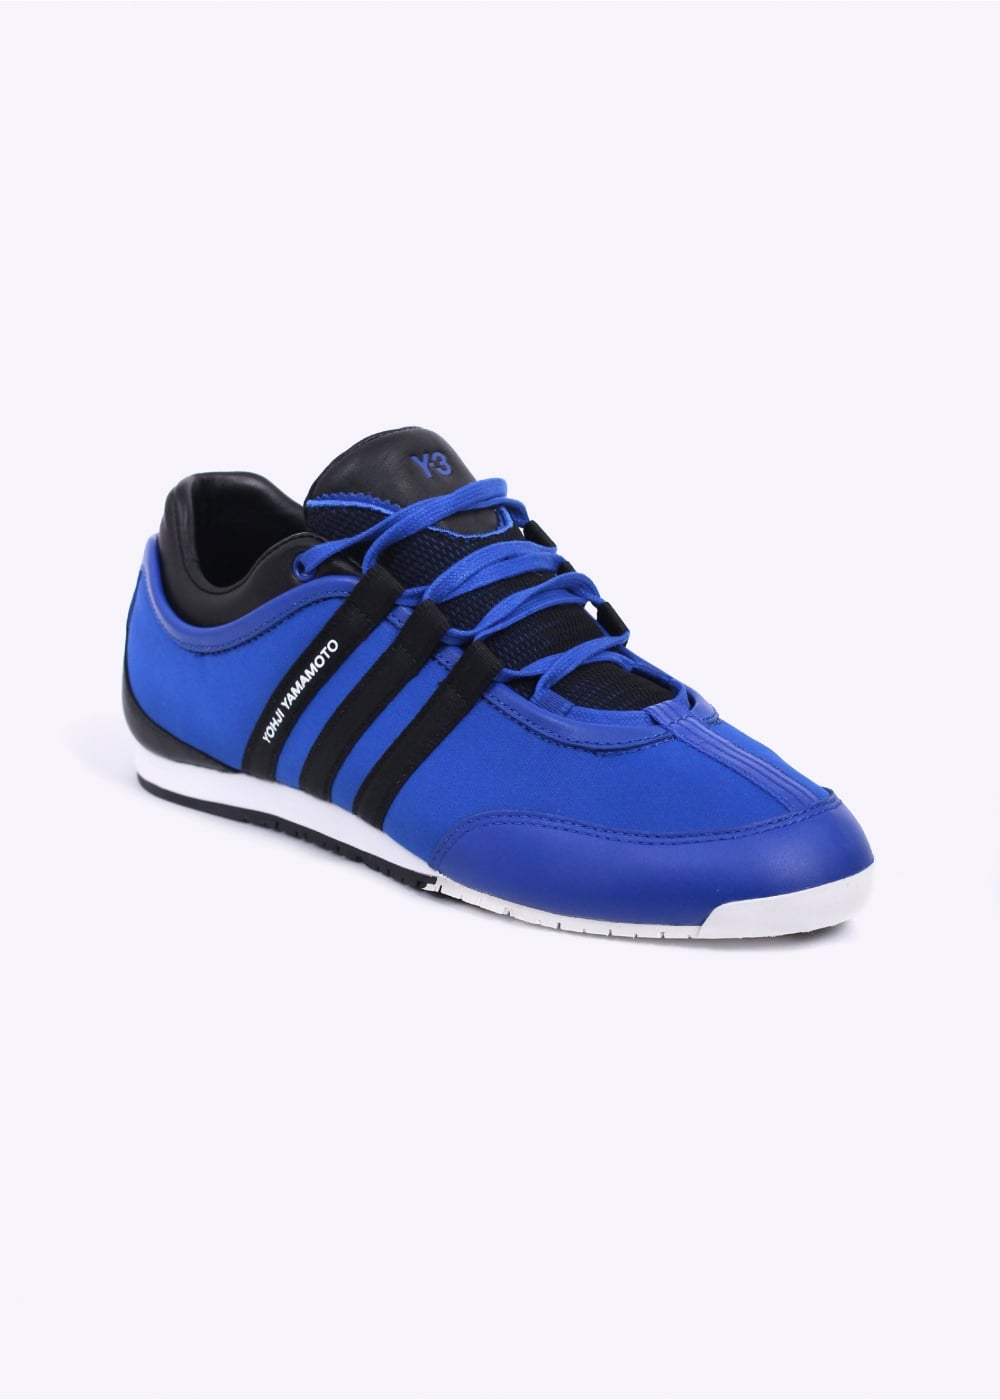 adidas Y-3 Boxing Trainers - Electric Blue dde22a47e